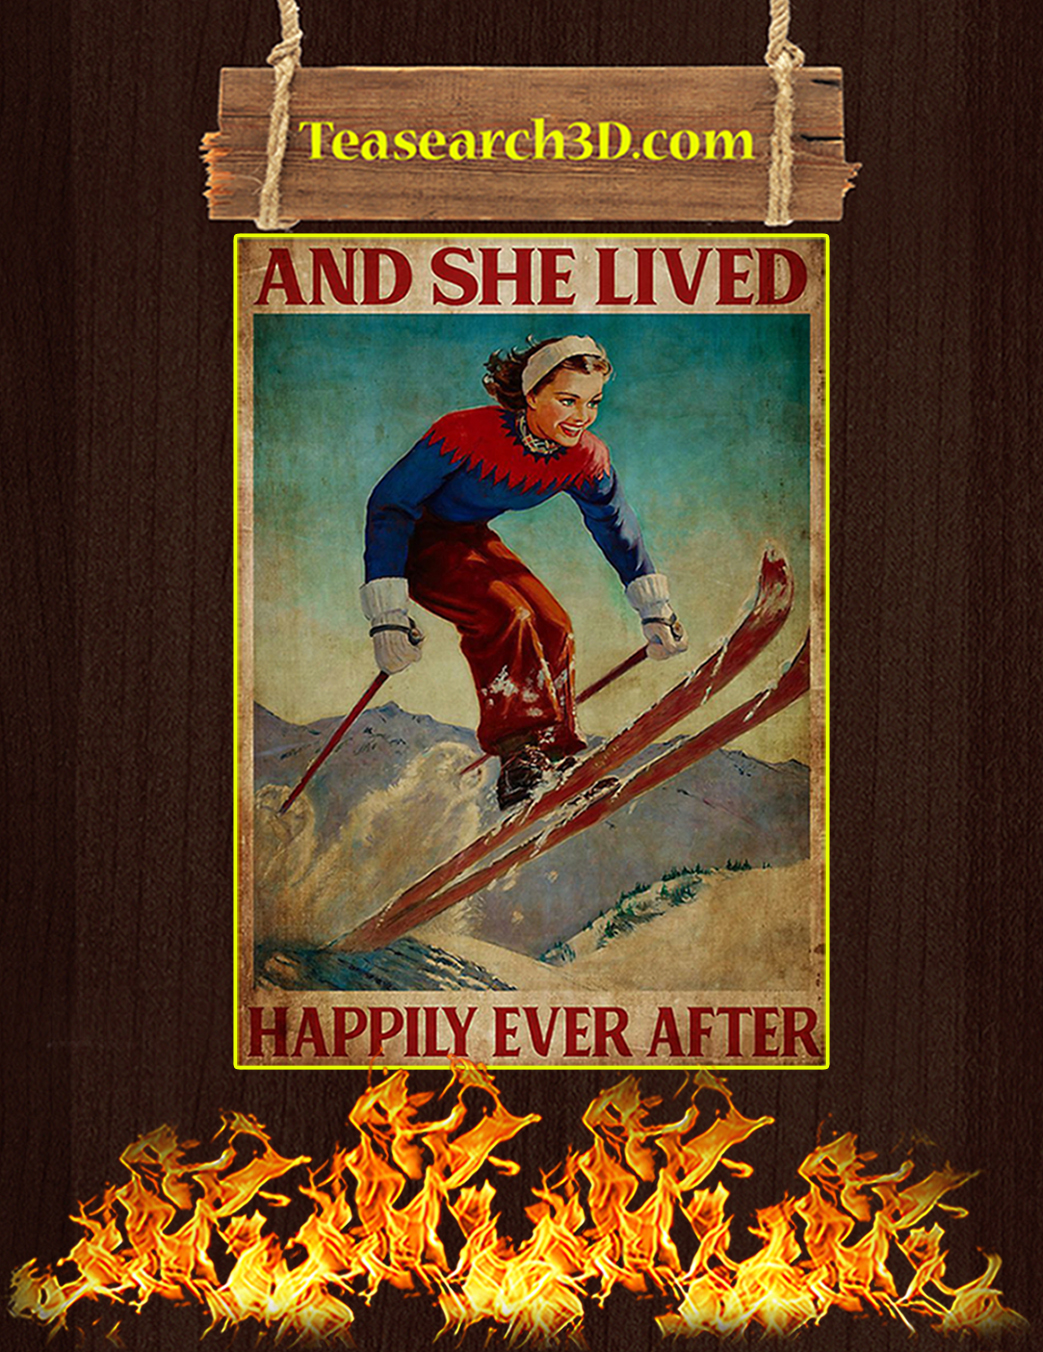 Skiing and she lived happily ever after poster A1